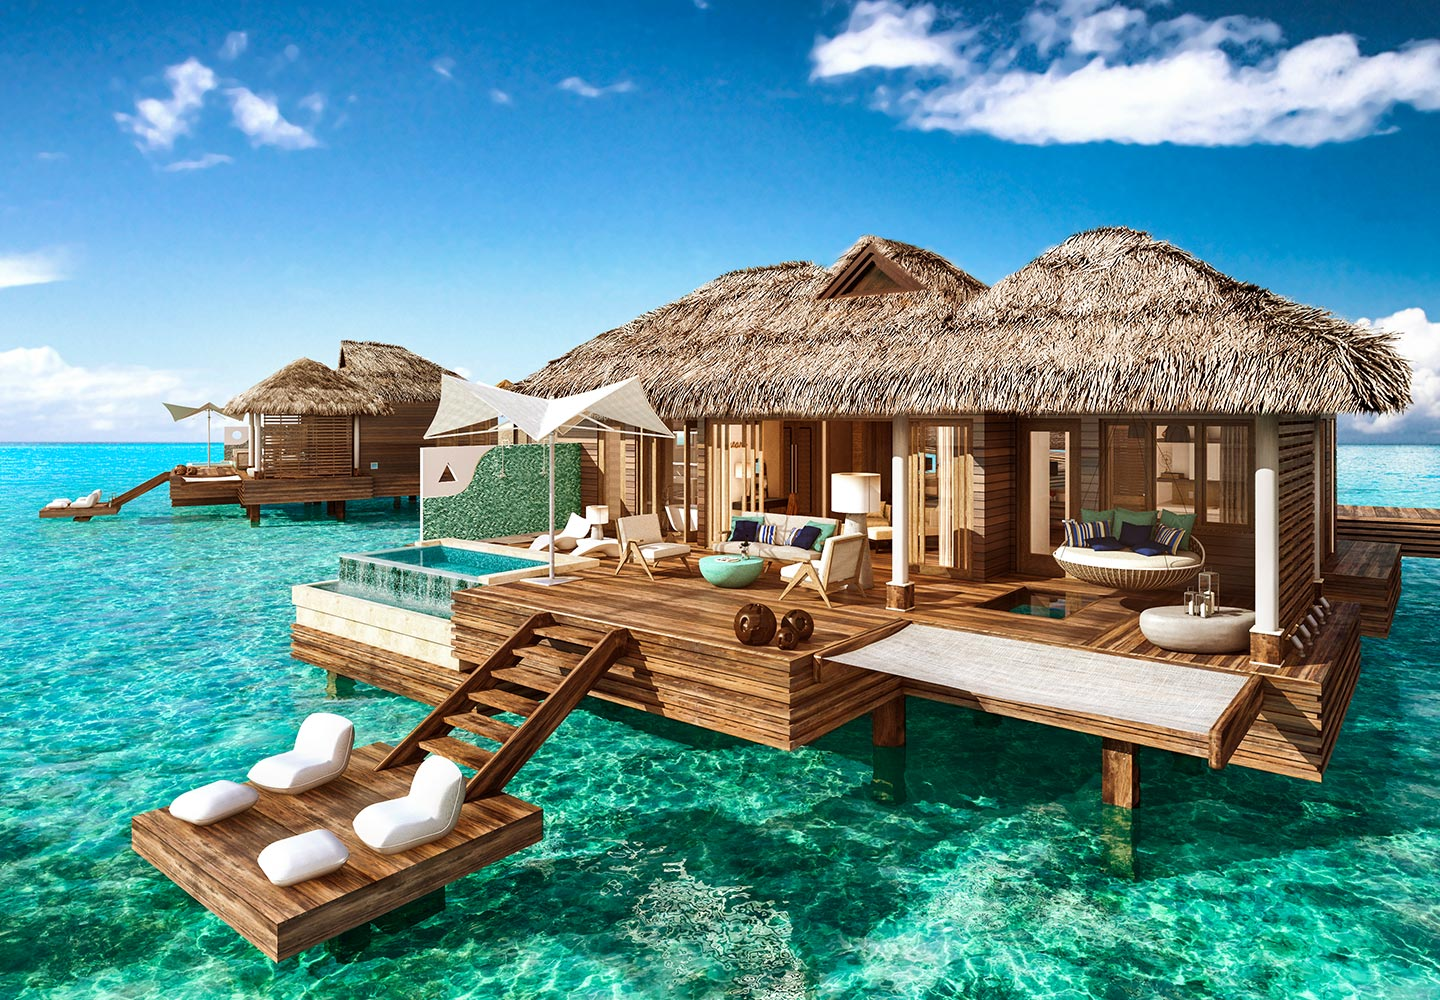 over-the-water bungalows at the Sandals Royal Caribbean Resort and Private Island in Jamaica, perfect location for luxury vacation packages, planned by Southern Travel Agency Augusta, GA